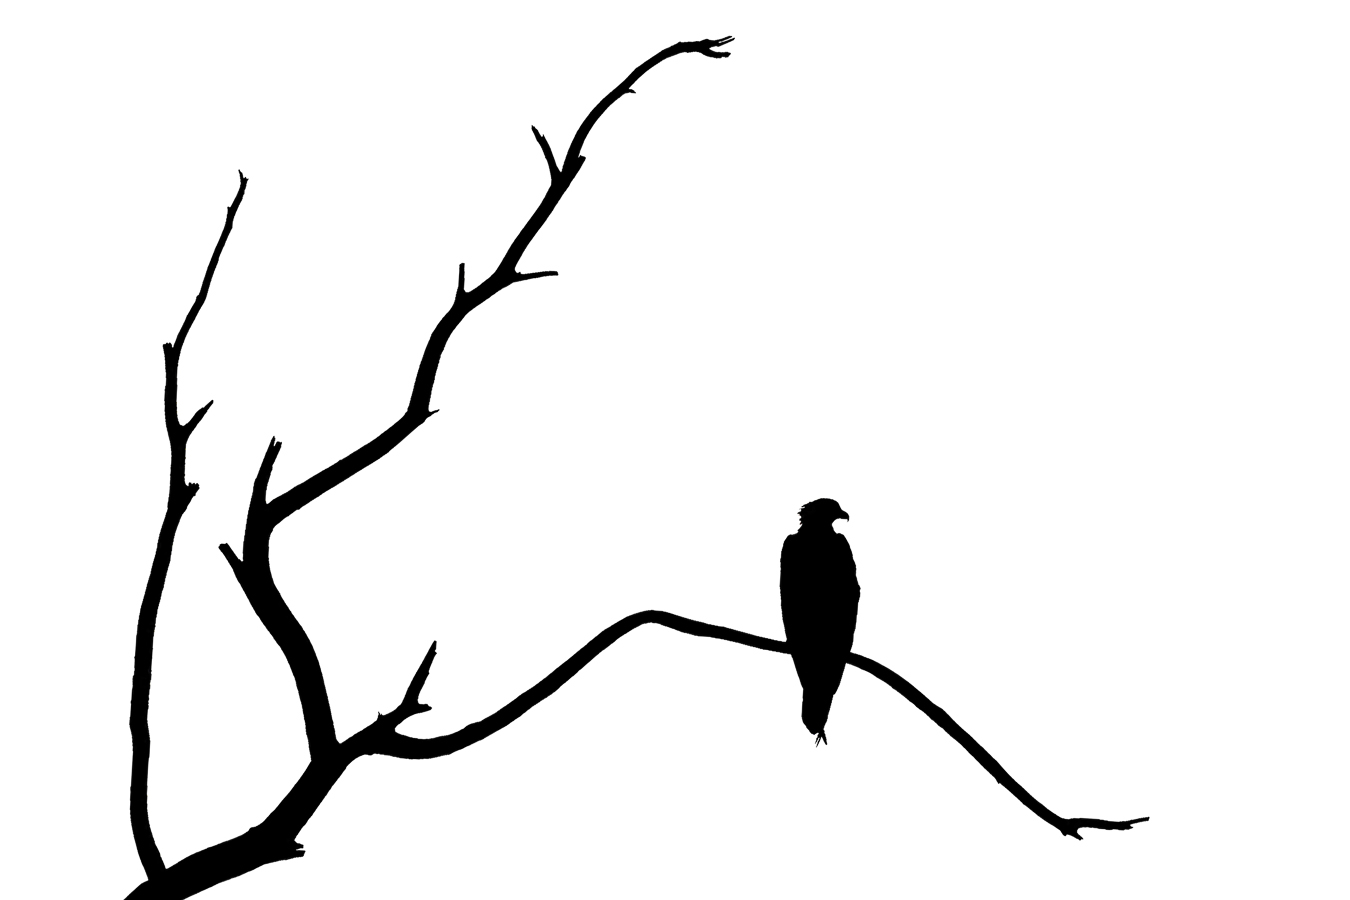 I Love You Clipart Black And White further Black And White Apple Tree Clipart as well Collectionsdwn Simple Branch Silhouette moreover Simple Black And White Tree likewise  on wallpaper 20tree